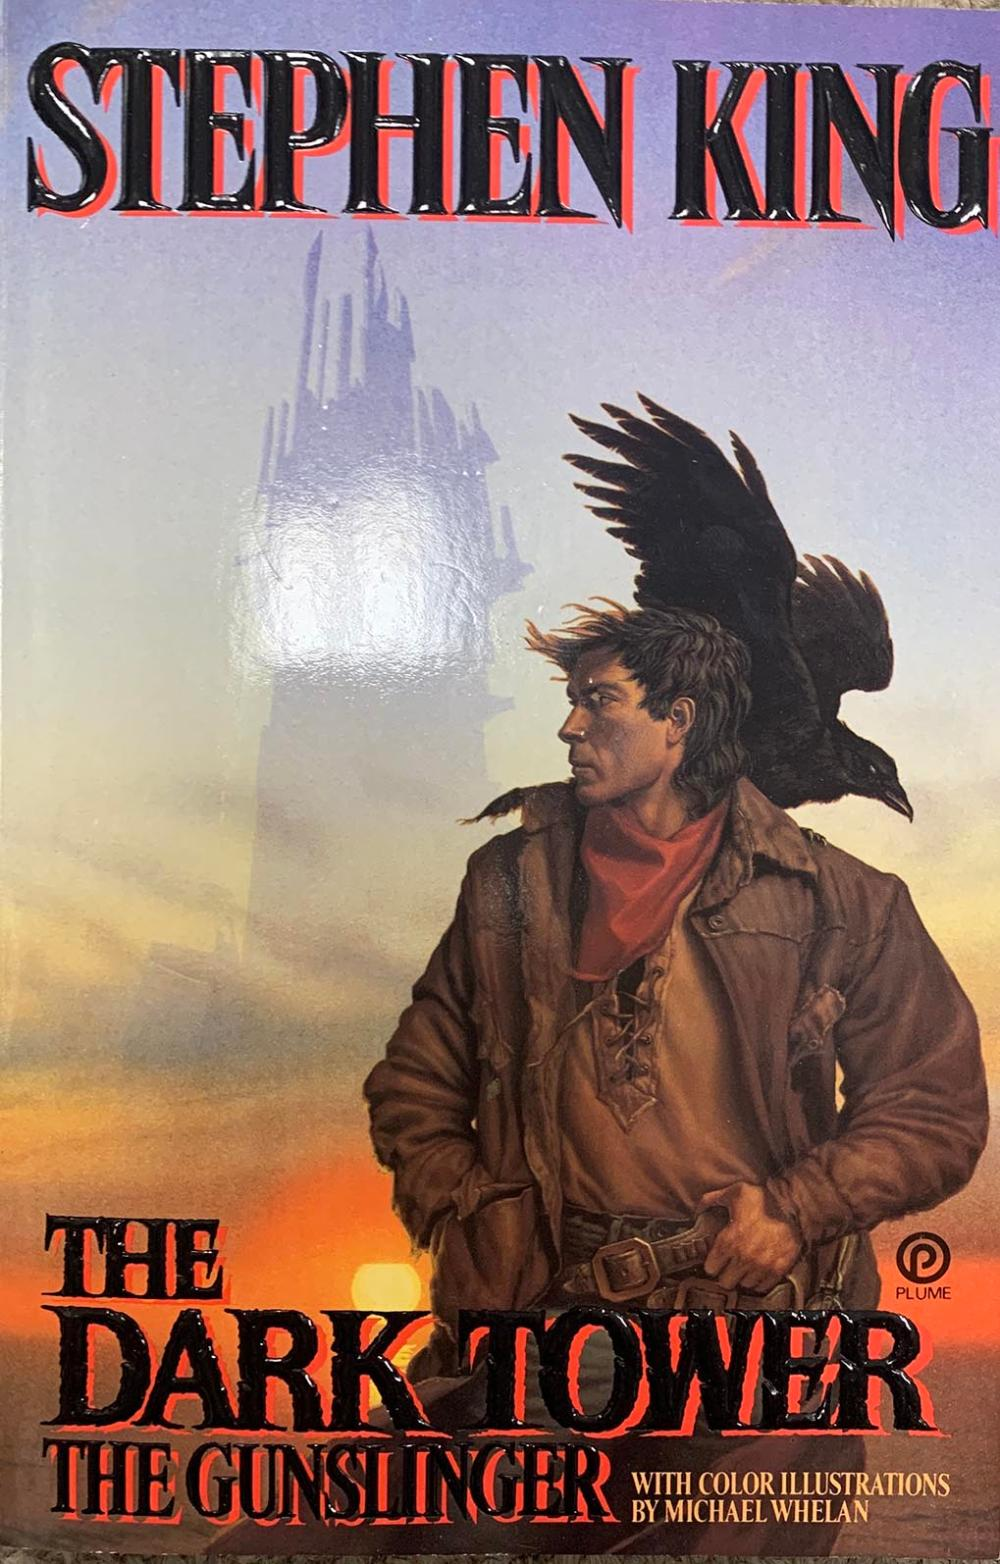 The Dark Tower The Gunslinger paperback